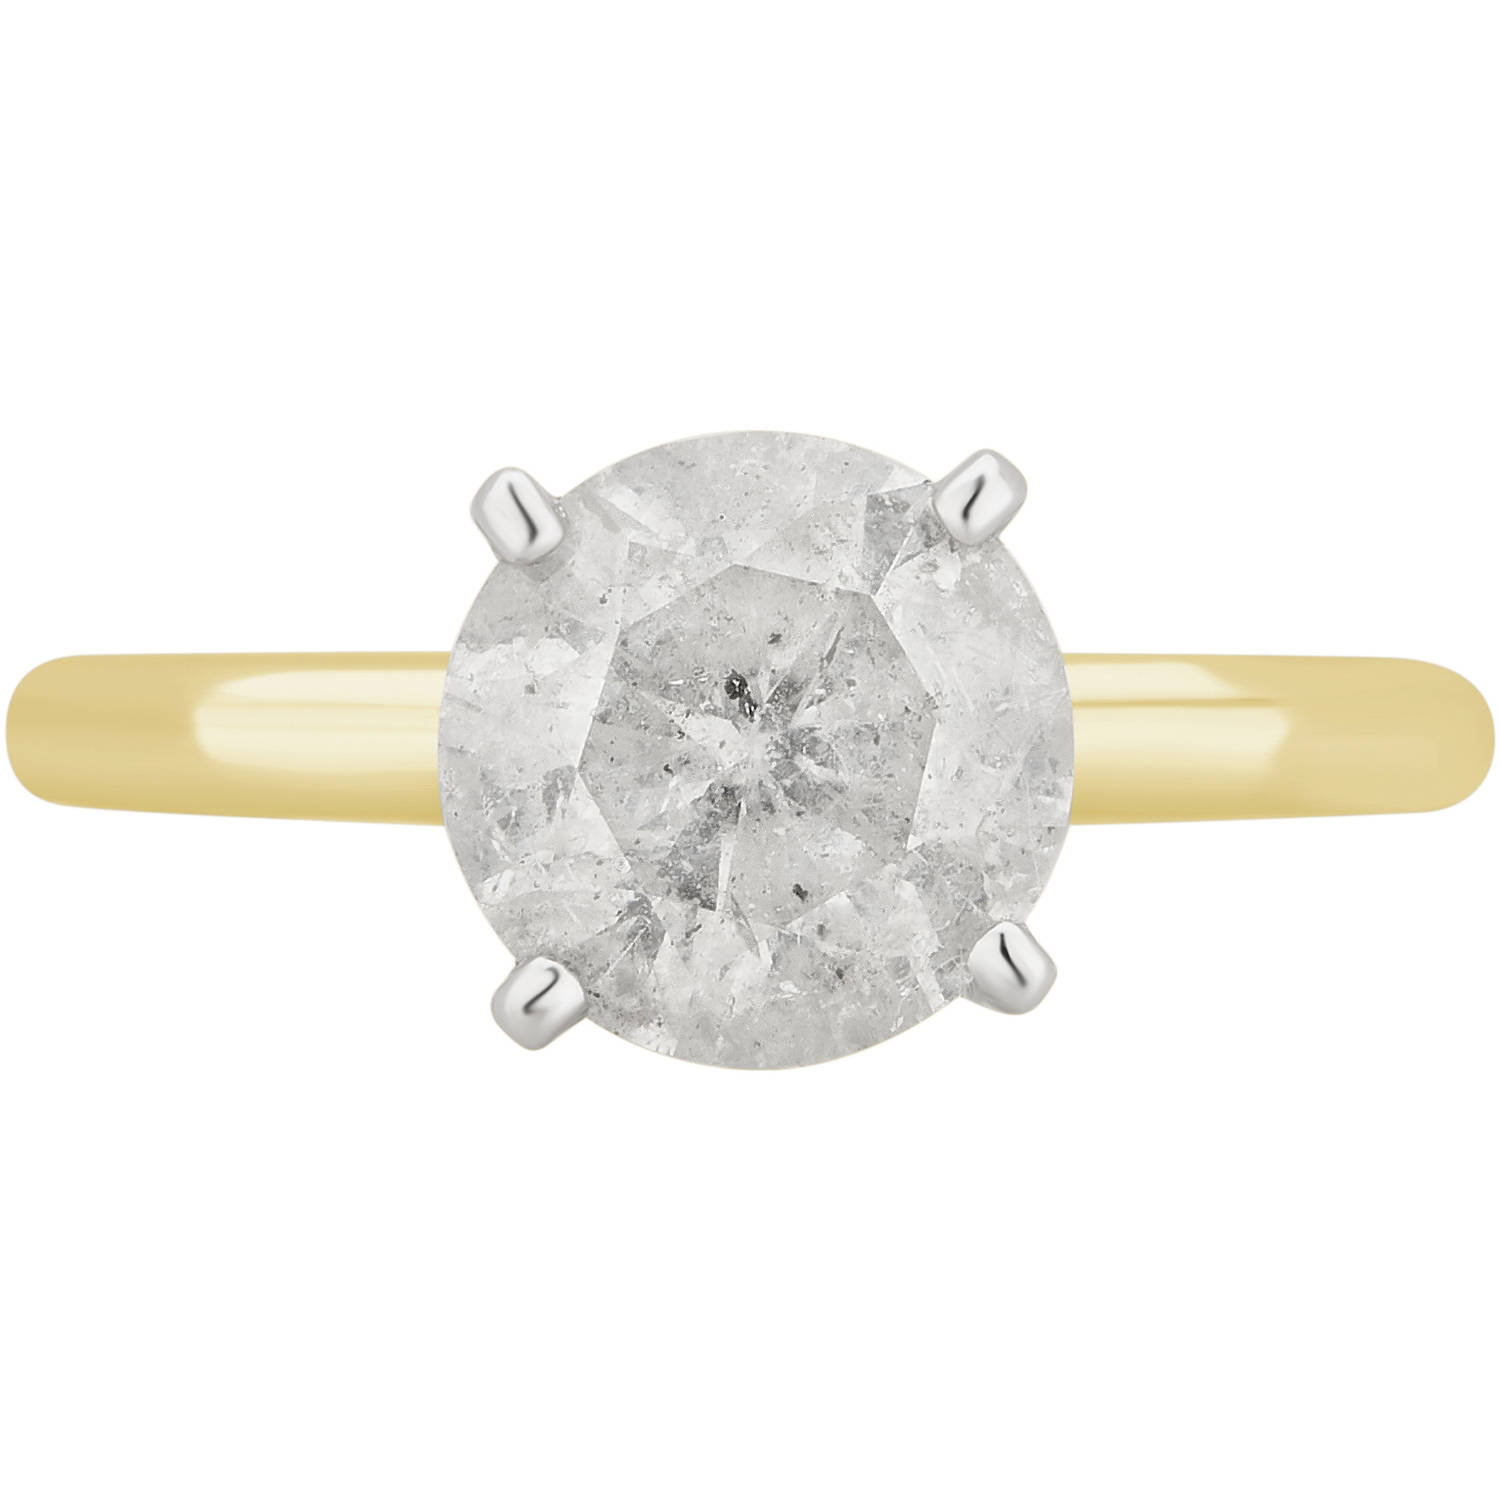 2 1 2 Carat T.W. 18kt Yellow Gold Diamond Solitaire Engagement Ring Comes in a Box by Generic